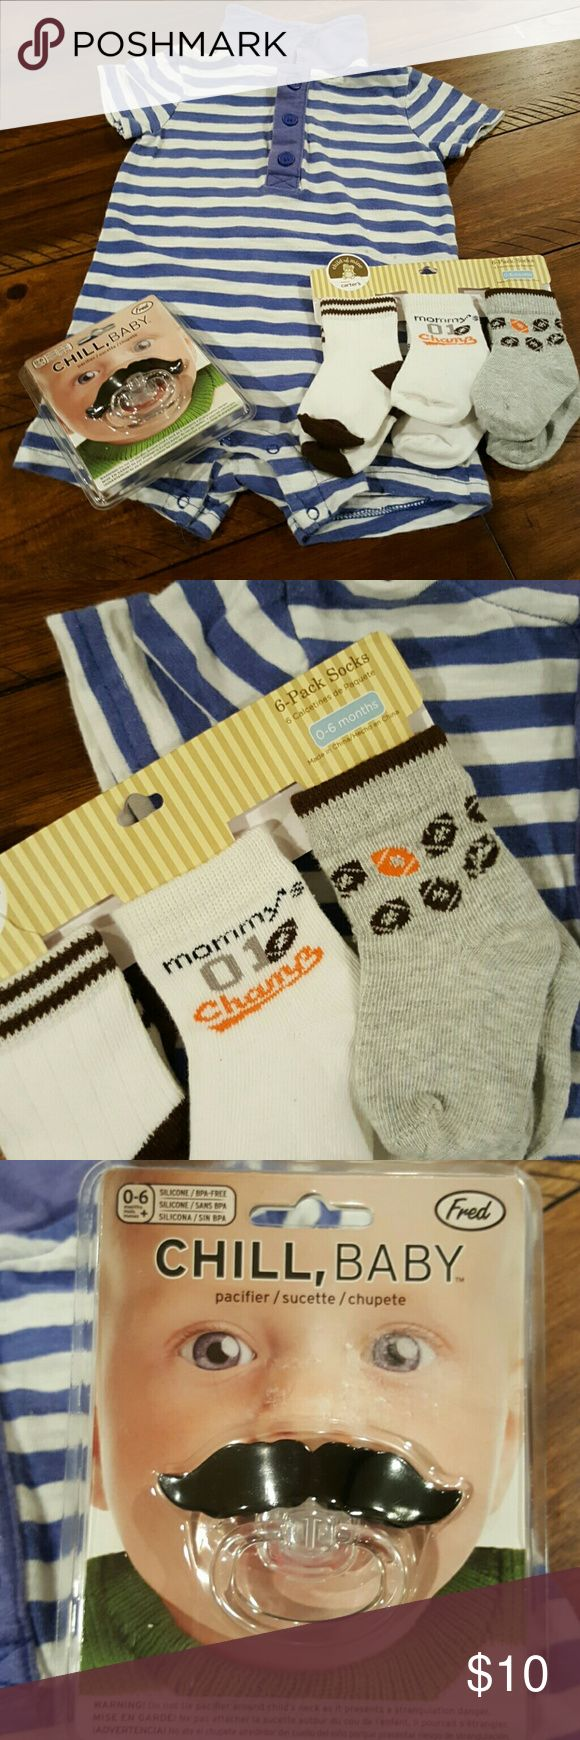 6 month baby bundle 6 month used Cherokee onsie, 6 pack of brand new socks, and a brand new still packaged mustache pacifier. Accessories